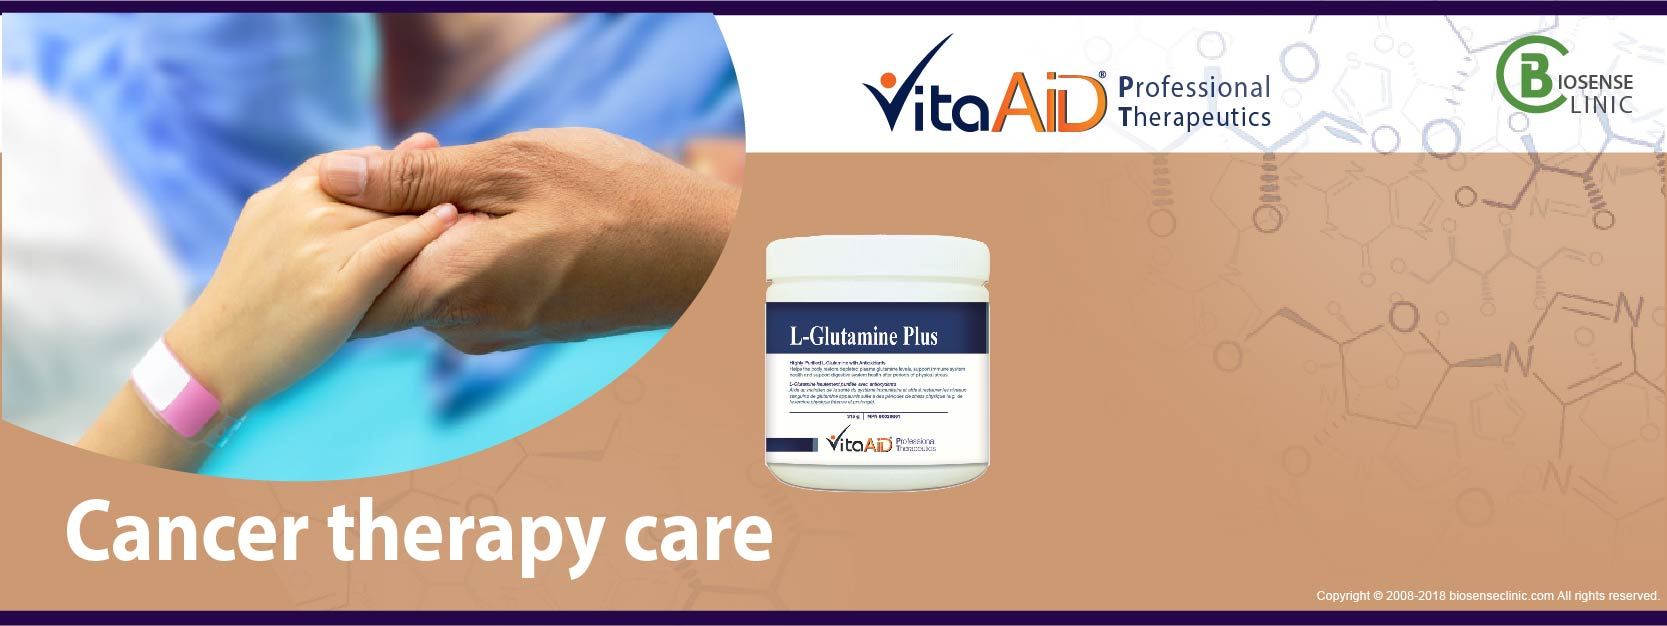 VitaAid category banner Cancer therapy care